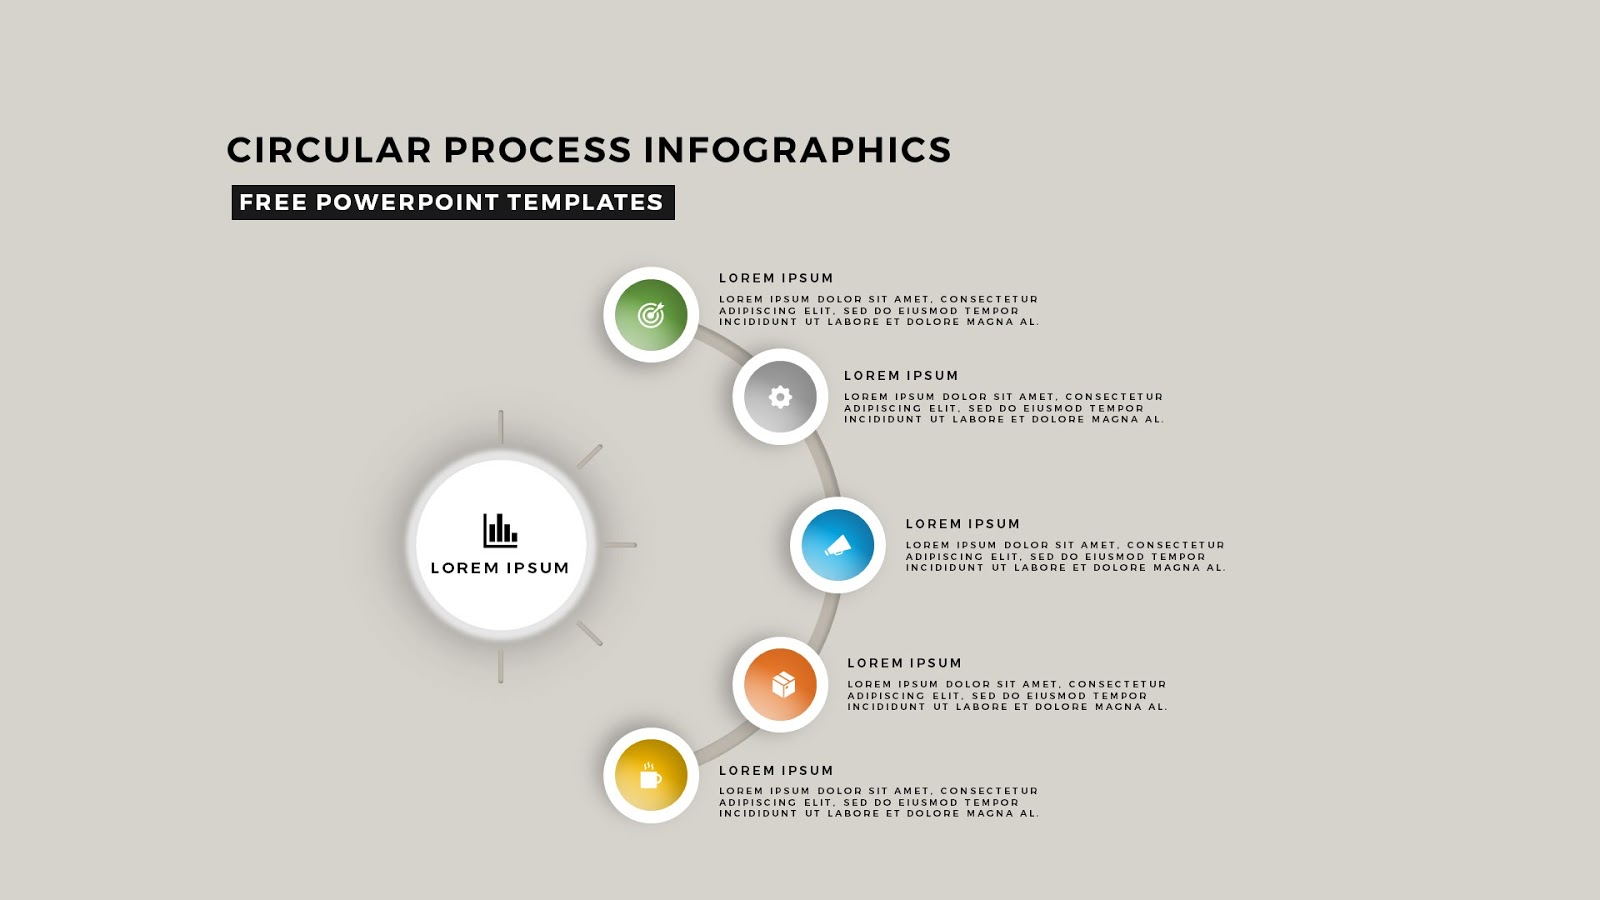 Circular Process Infographic Diagrams for Free PowerPoint Templates ...